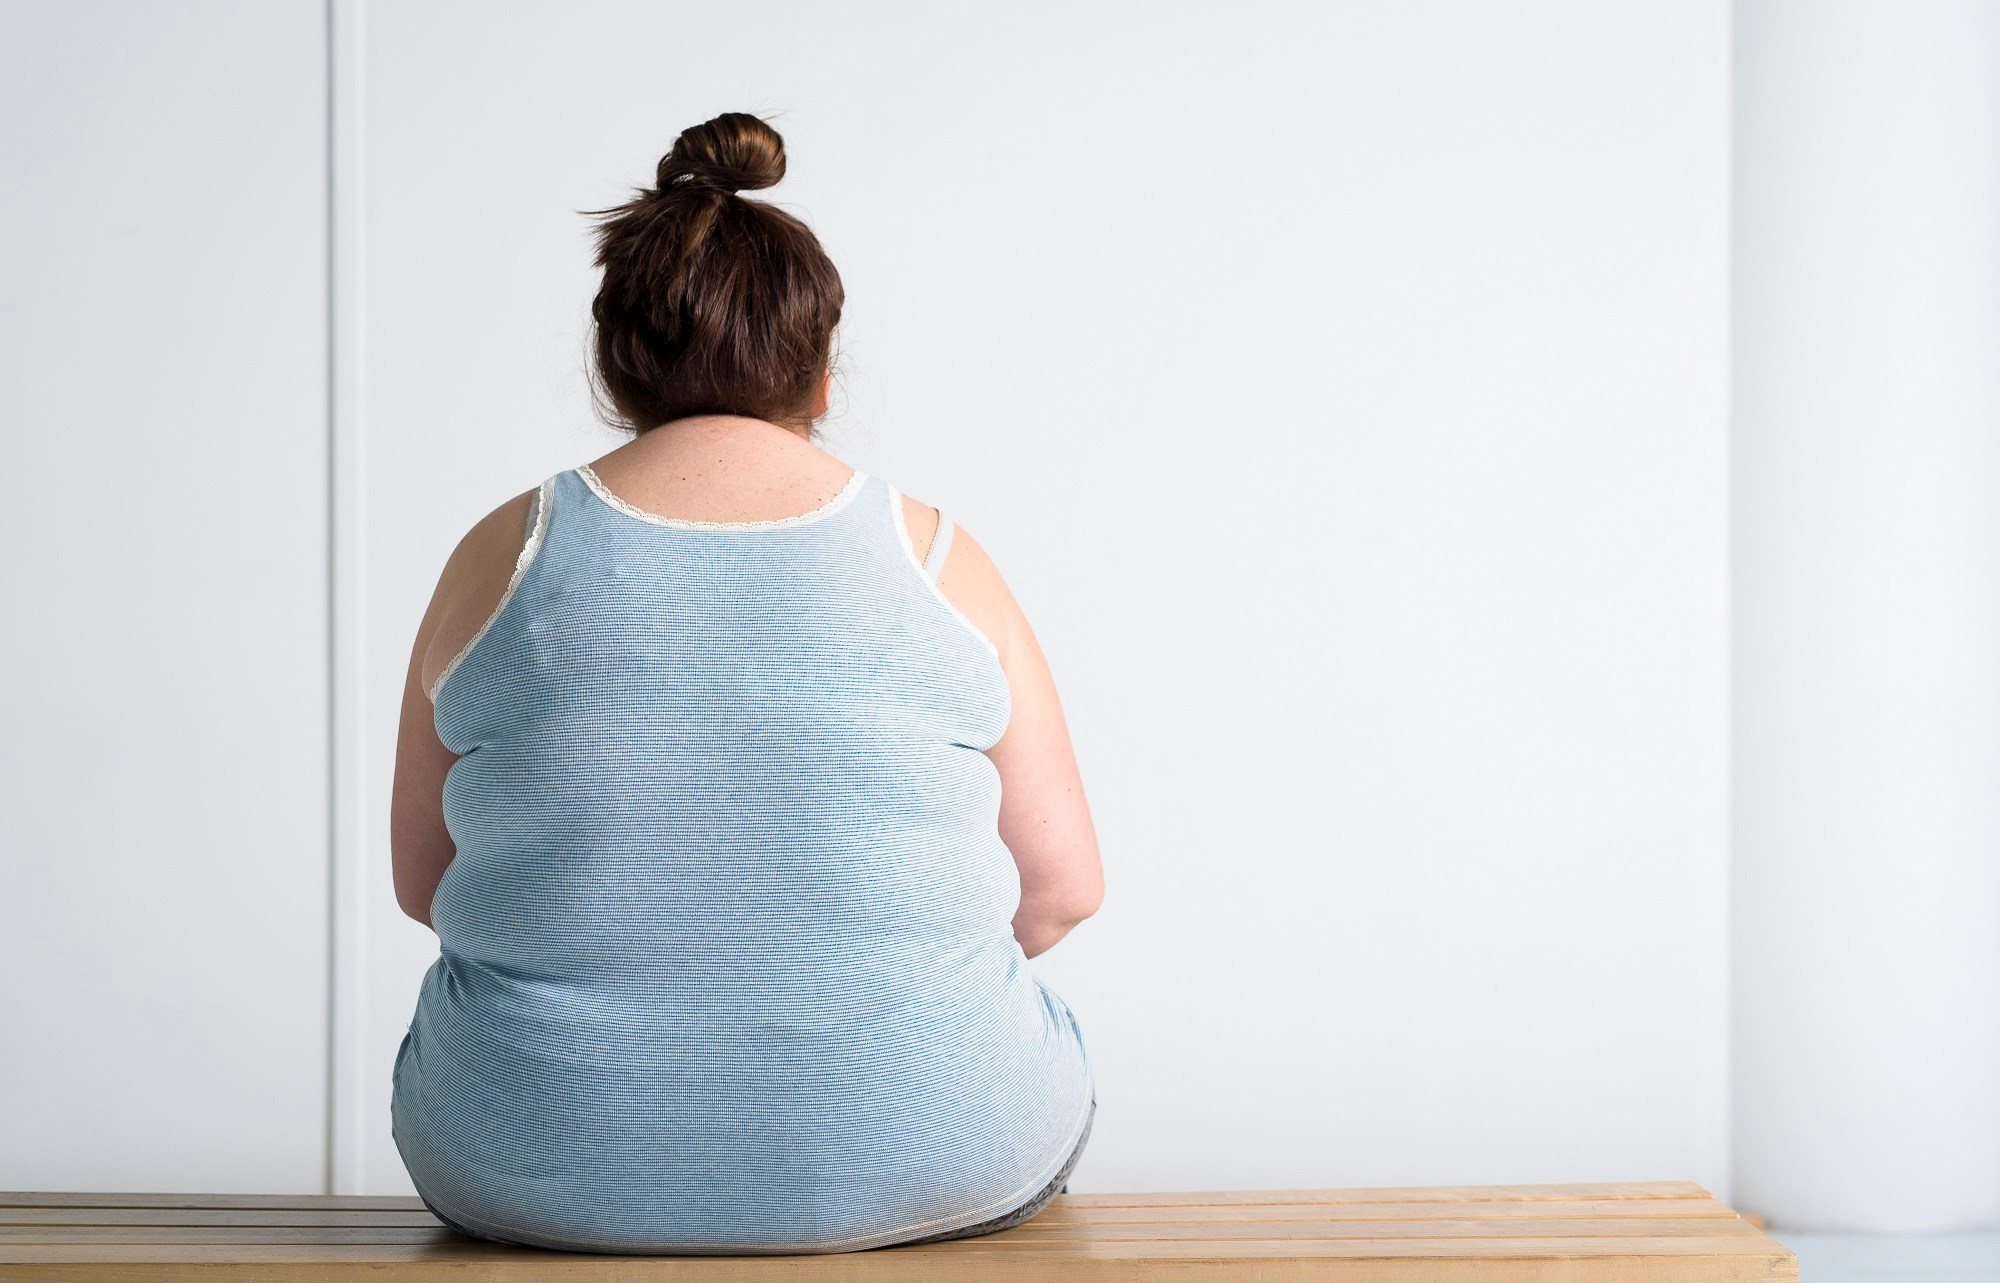 Obesity in Adolescent Girls Associated With Negative Outcomes in Adulthood